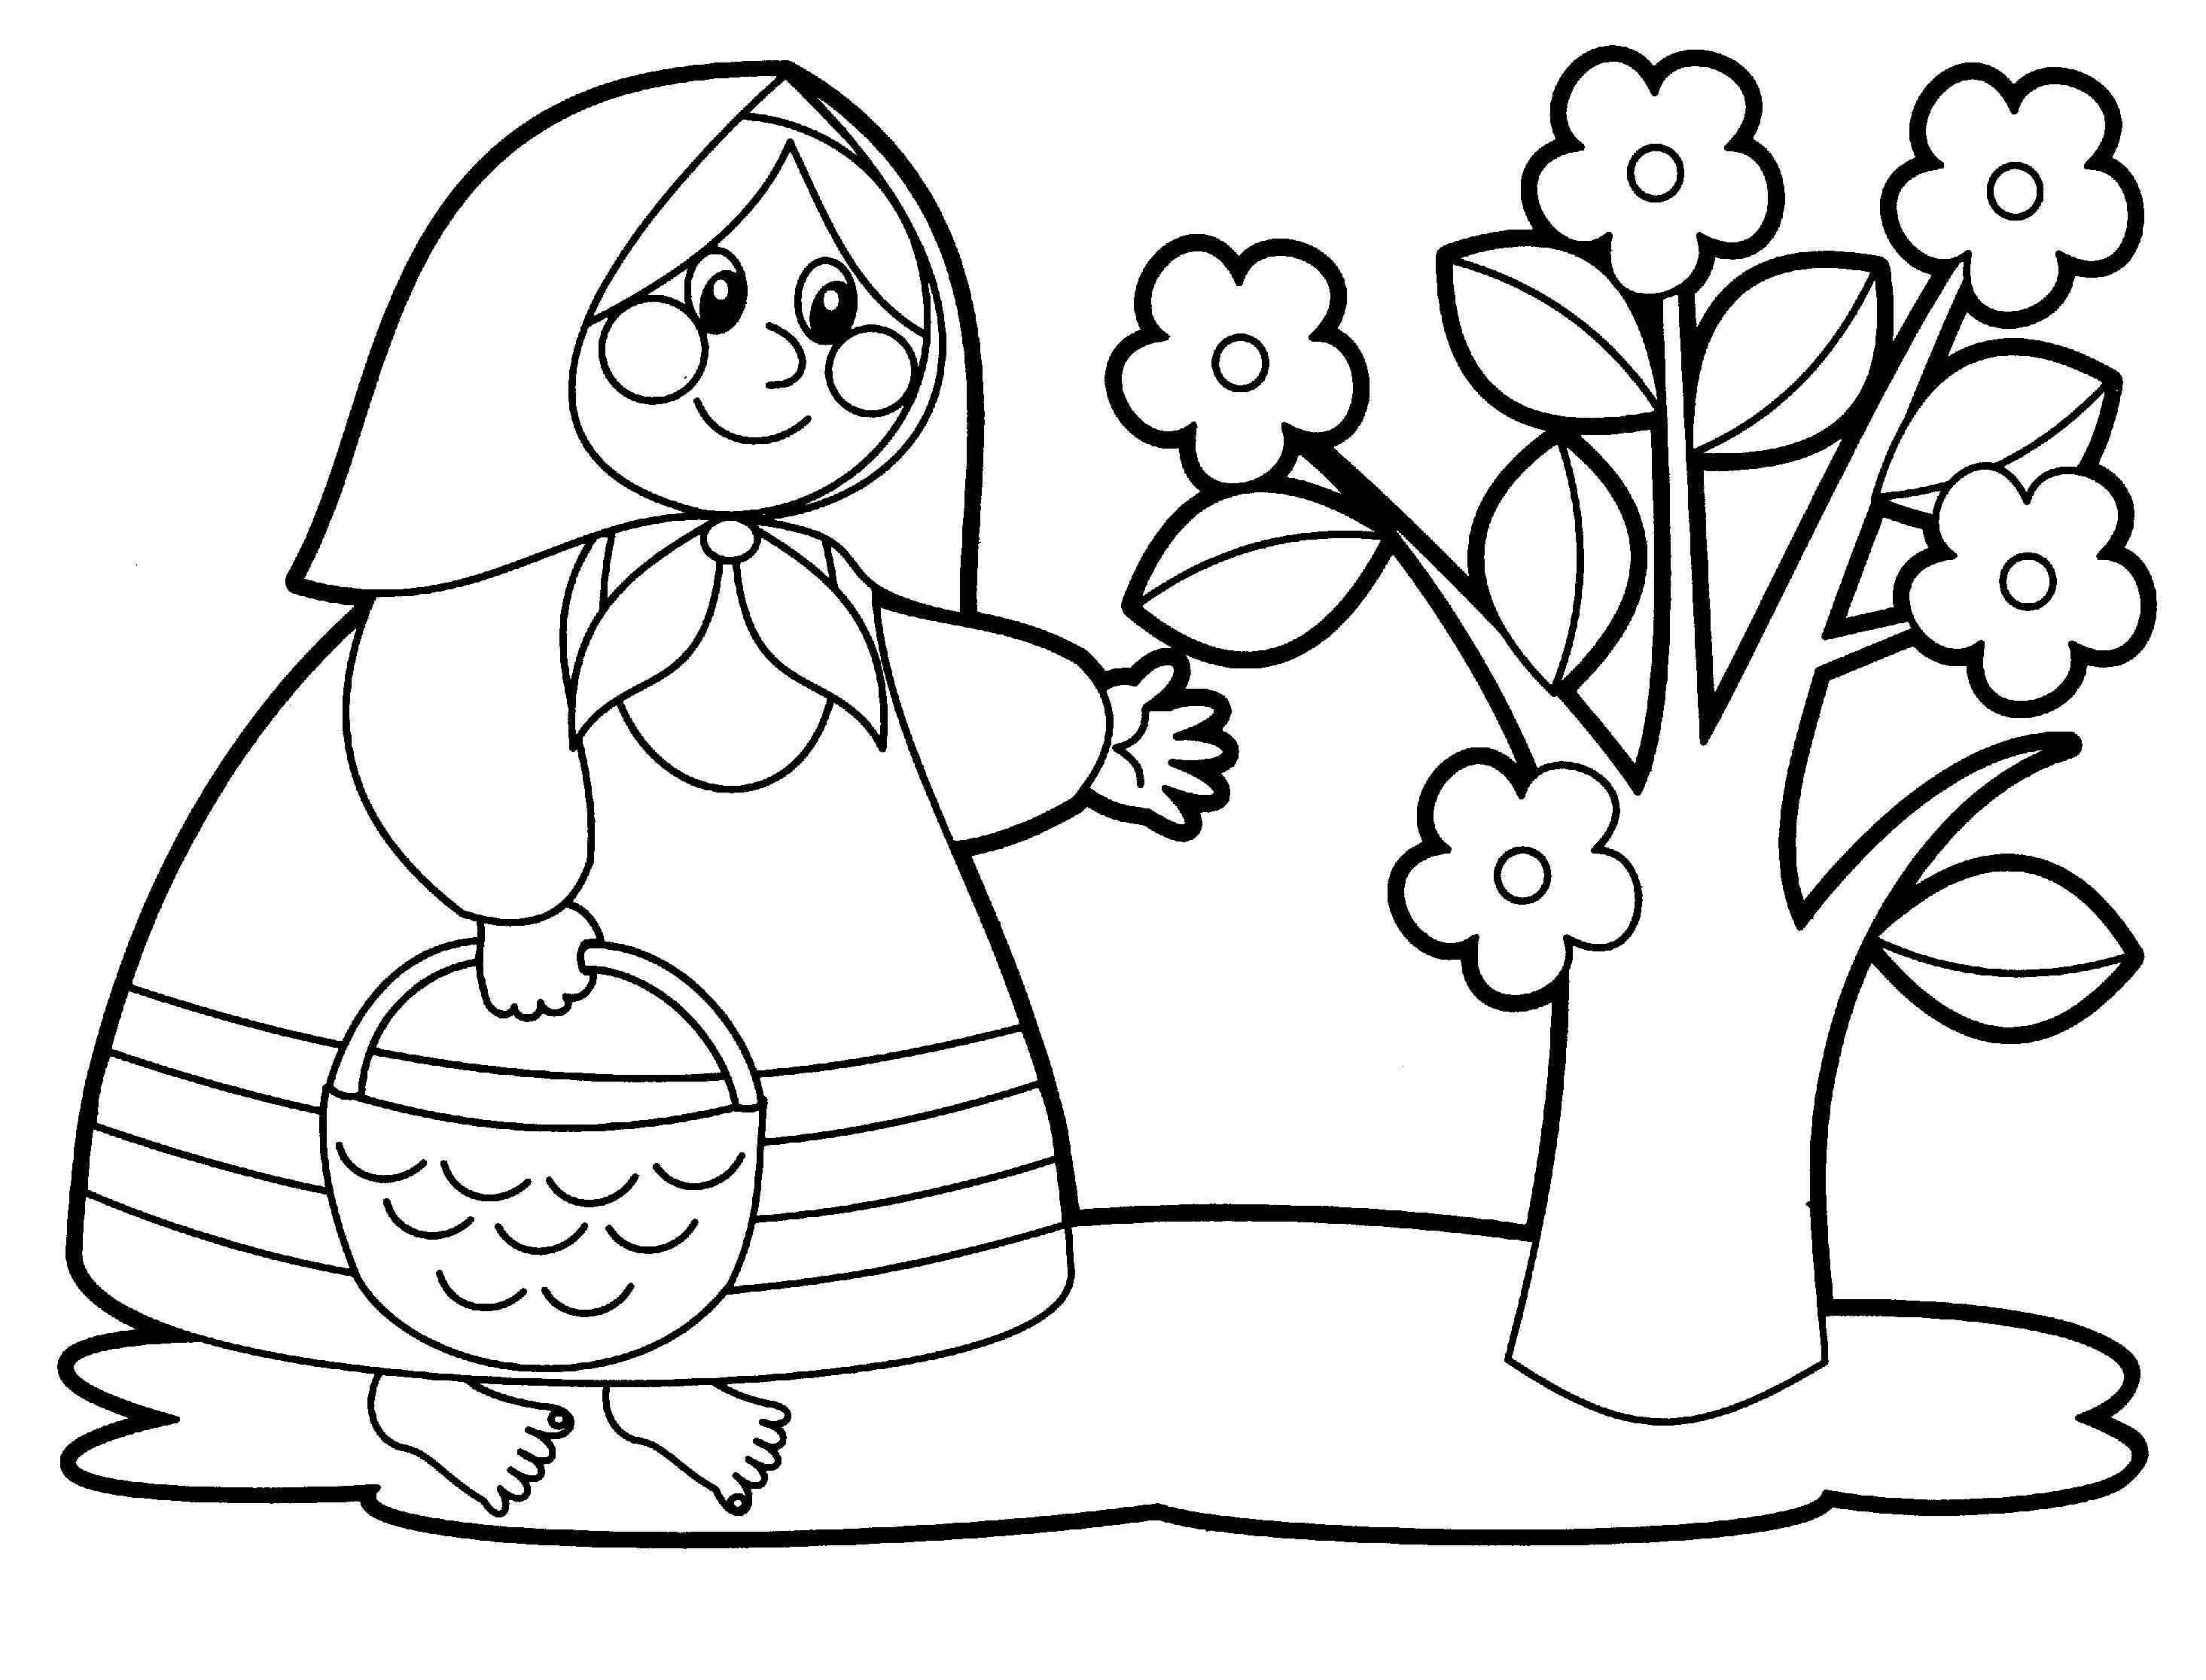 coloring kids pages - photo#3